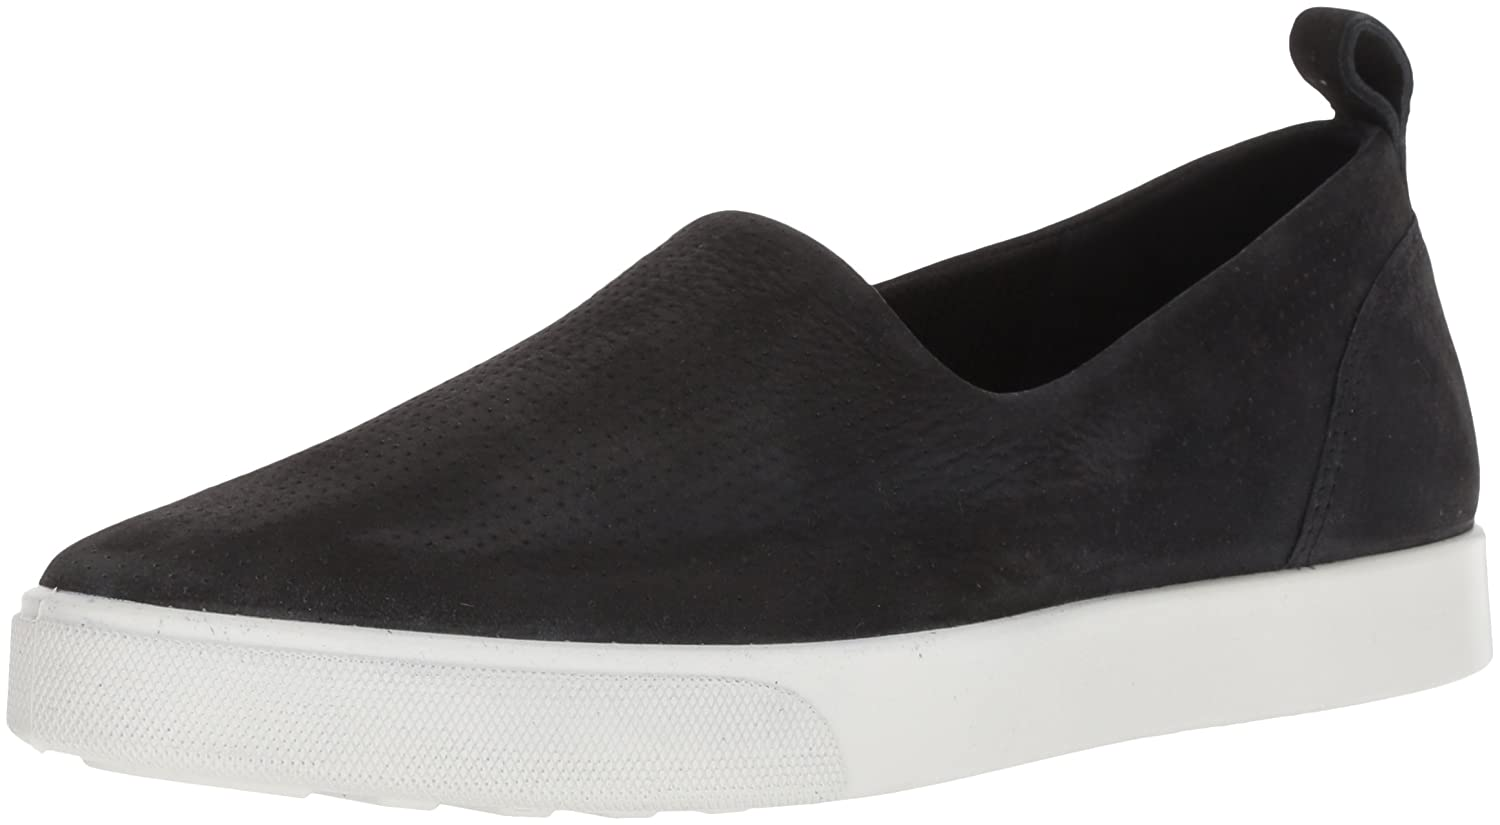 ECCO Women's Gillian Casual Slip on Sneaker B0774W7TRD 35 M EU (4-4.5 US)|Black